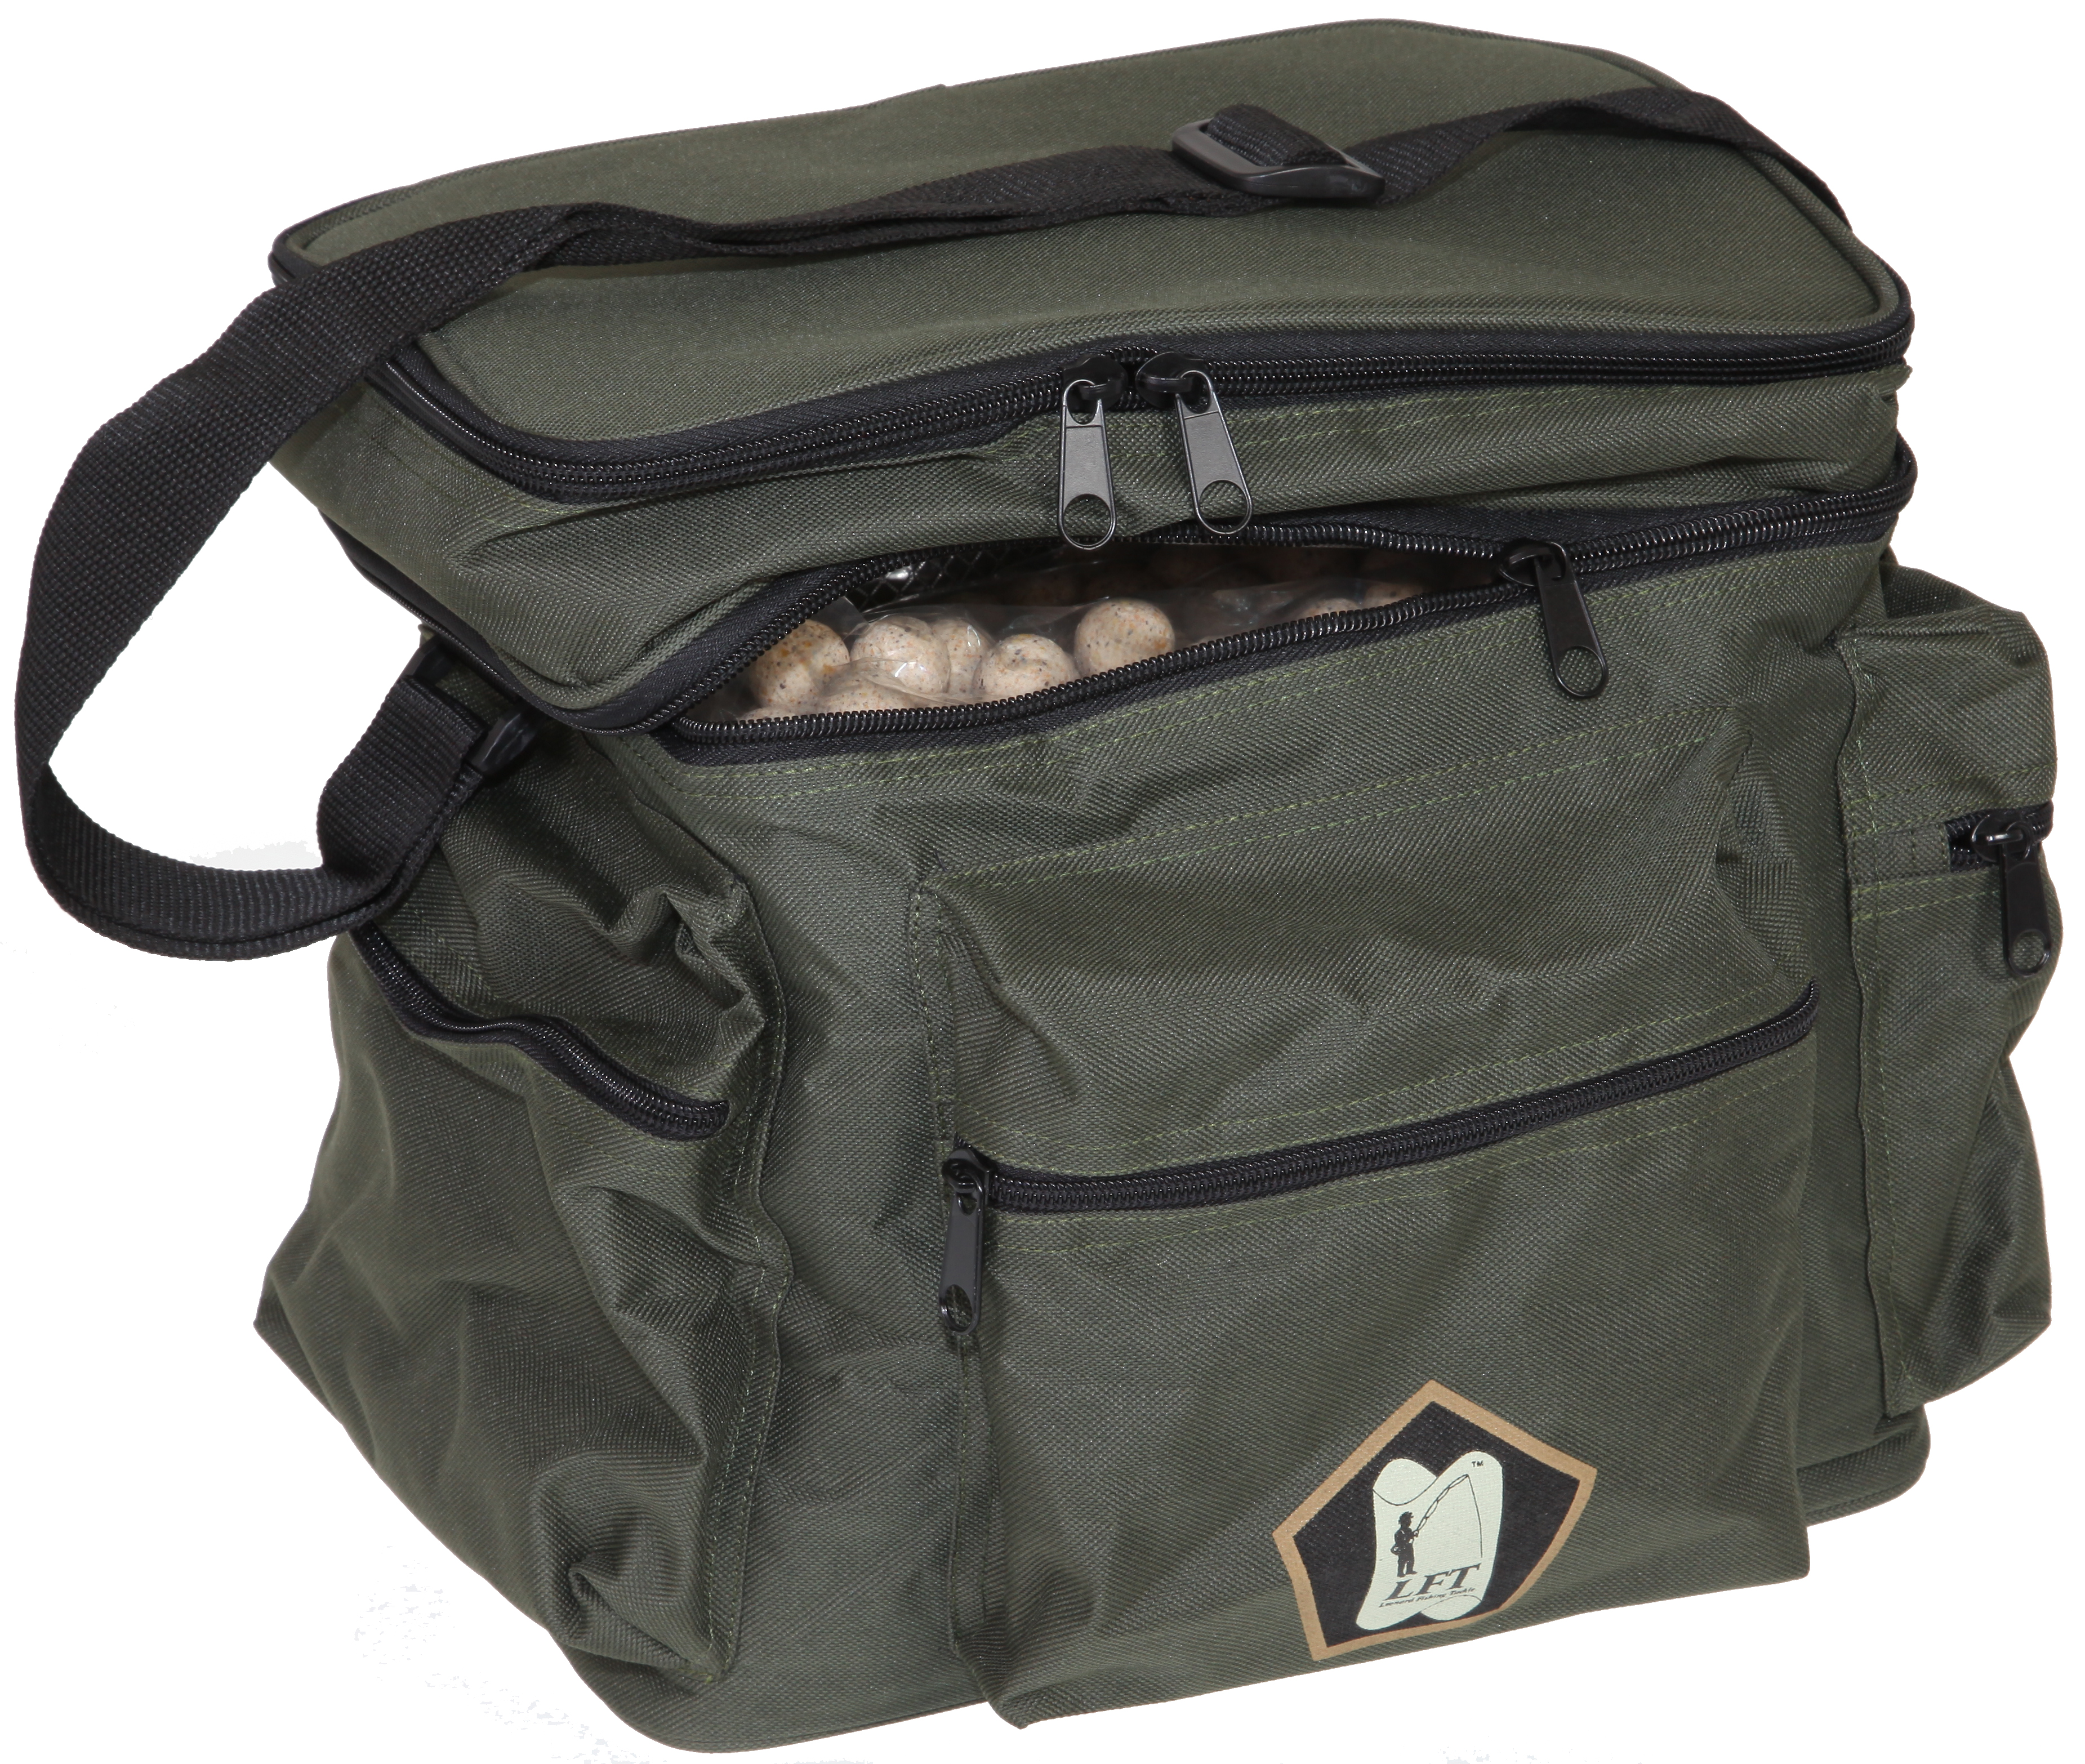 LFT Favourite Carp Cooler Bag